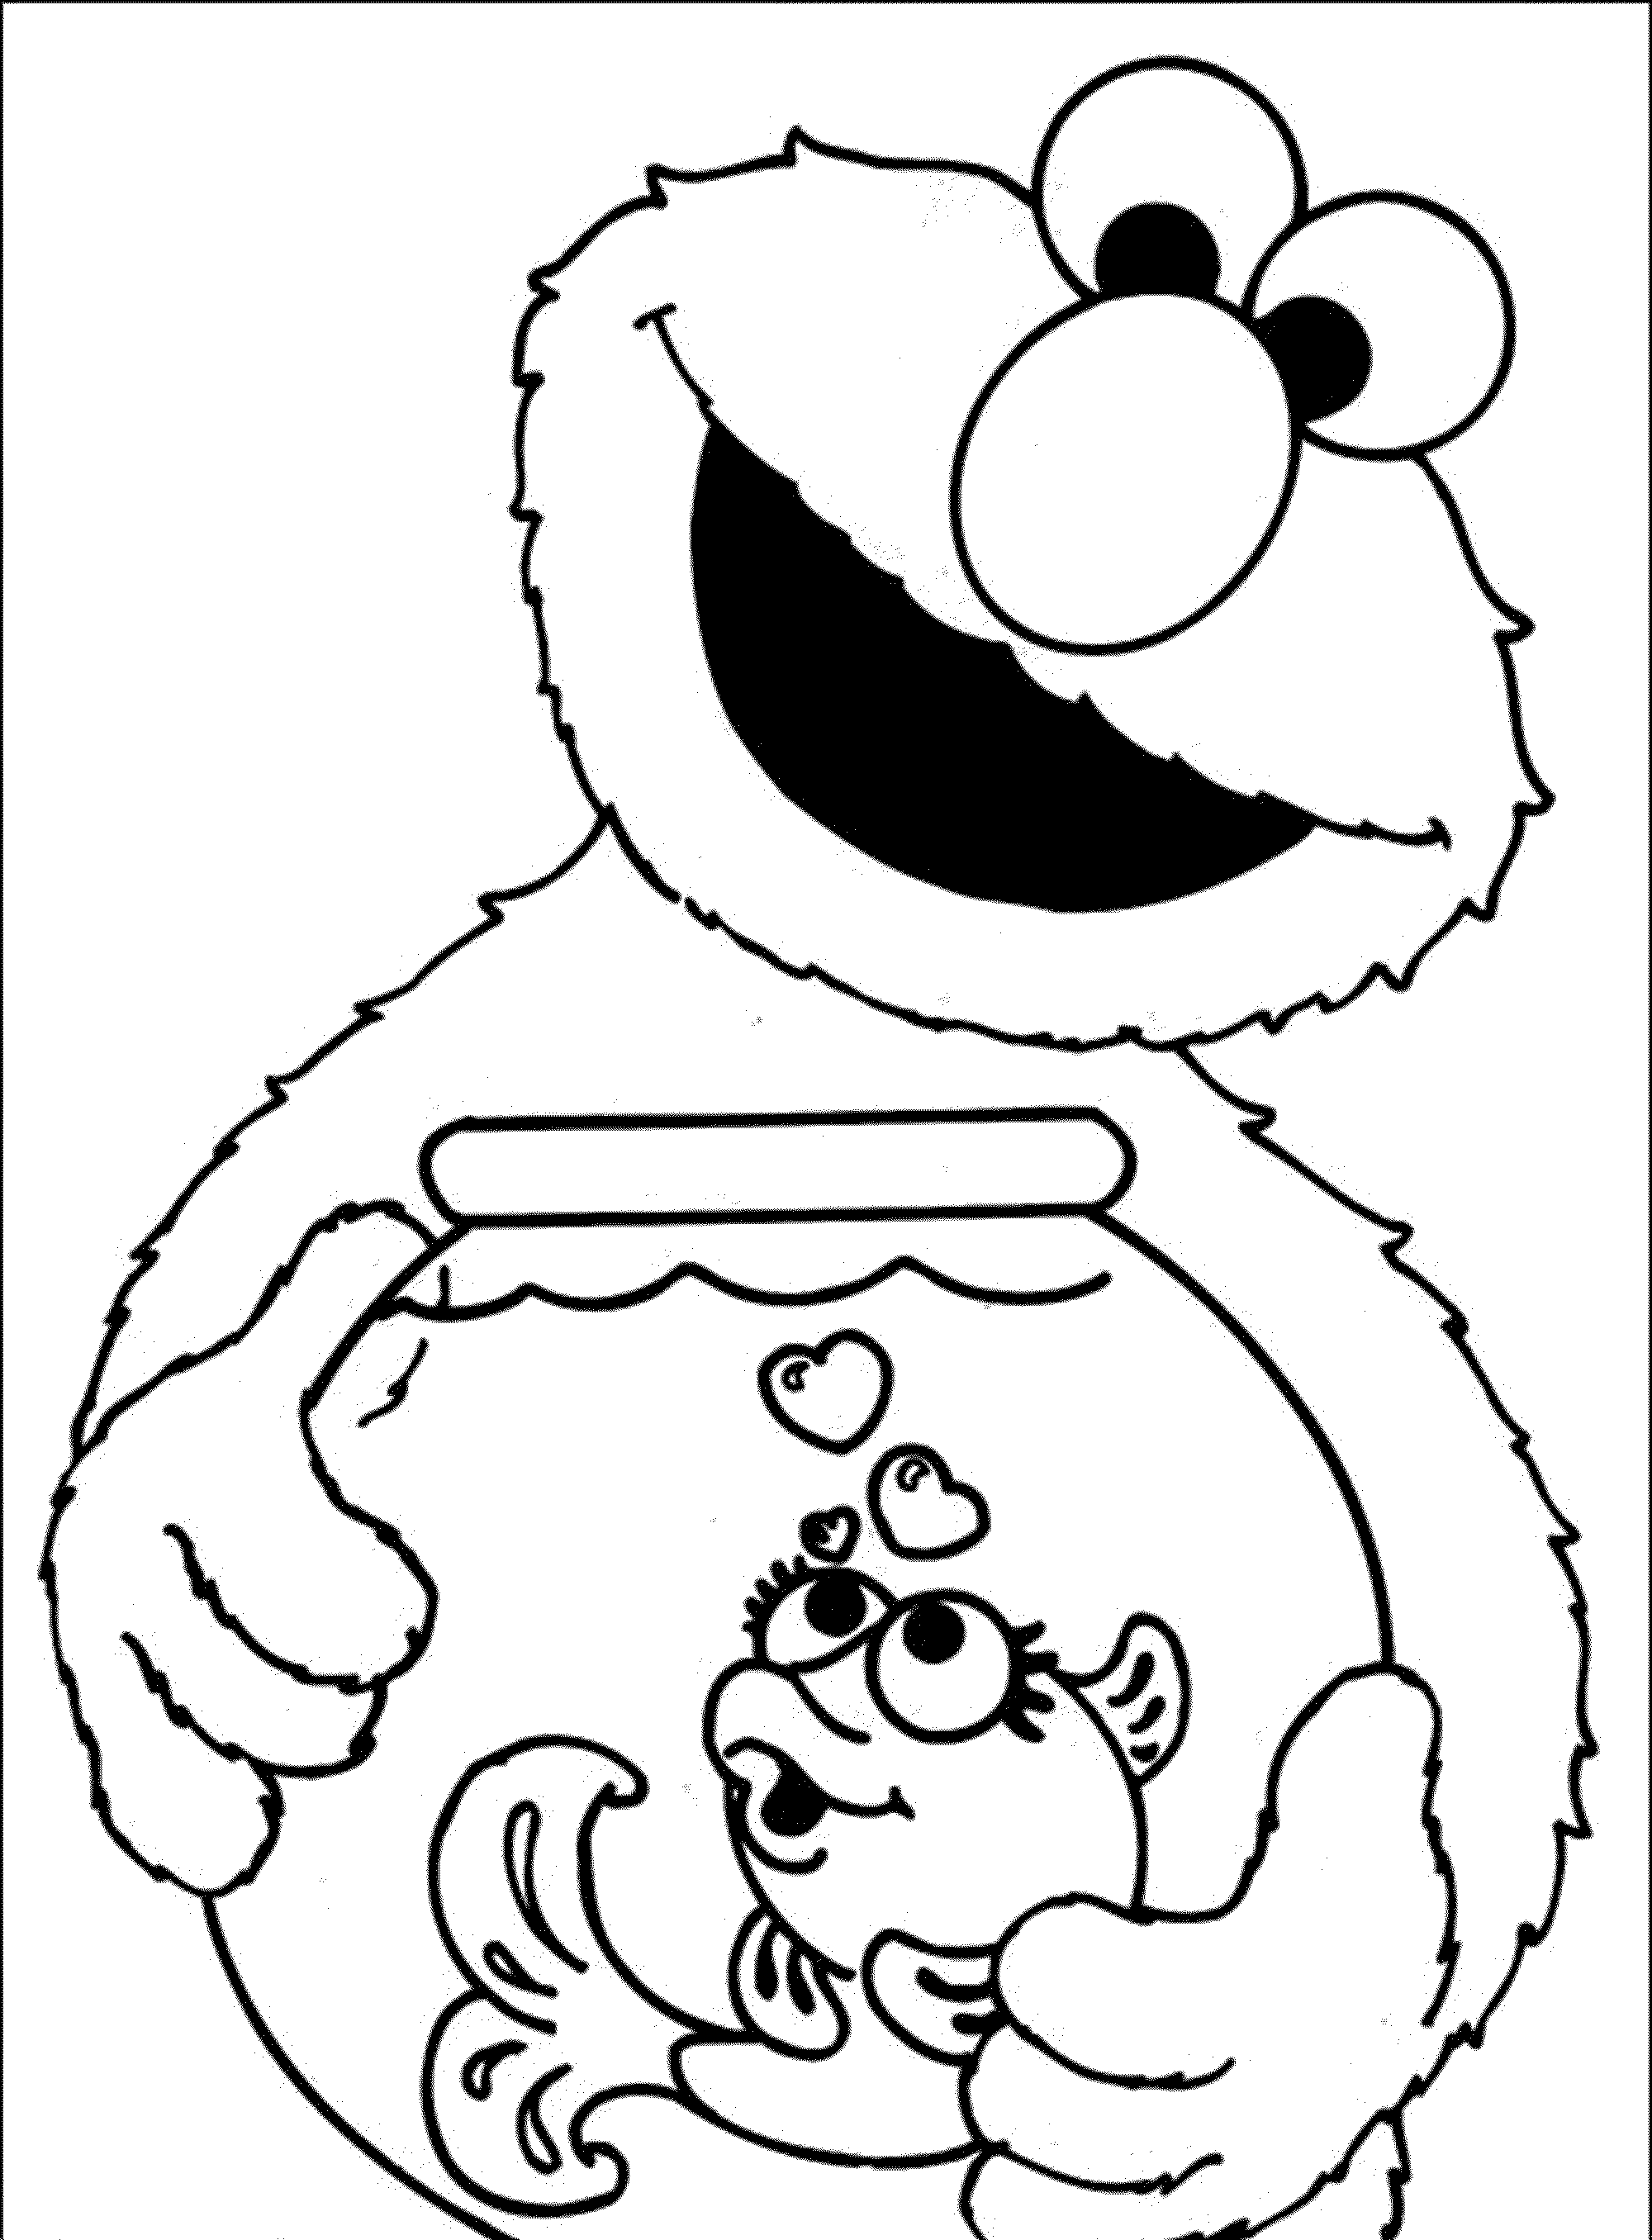 elmo and friends coloring pages | Elmo And Friends Coloring Pages - Coloring Home